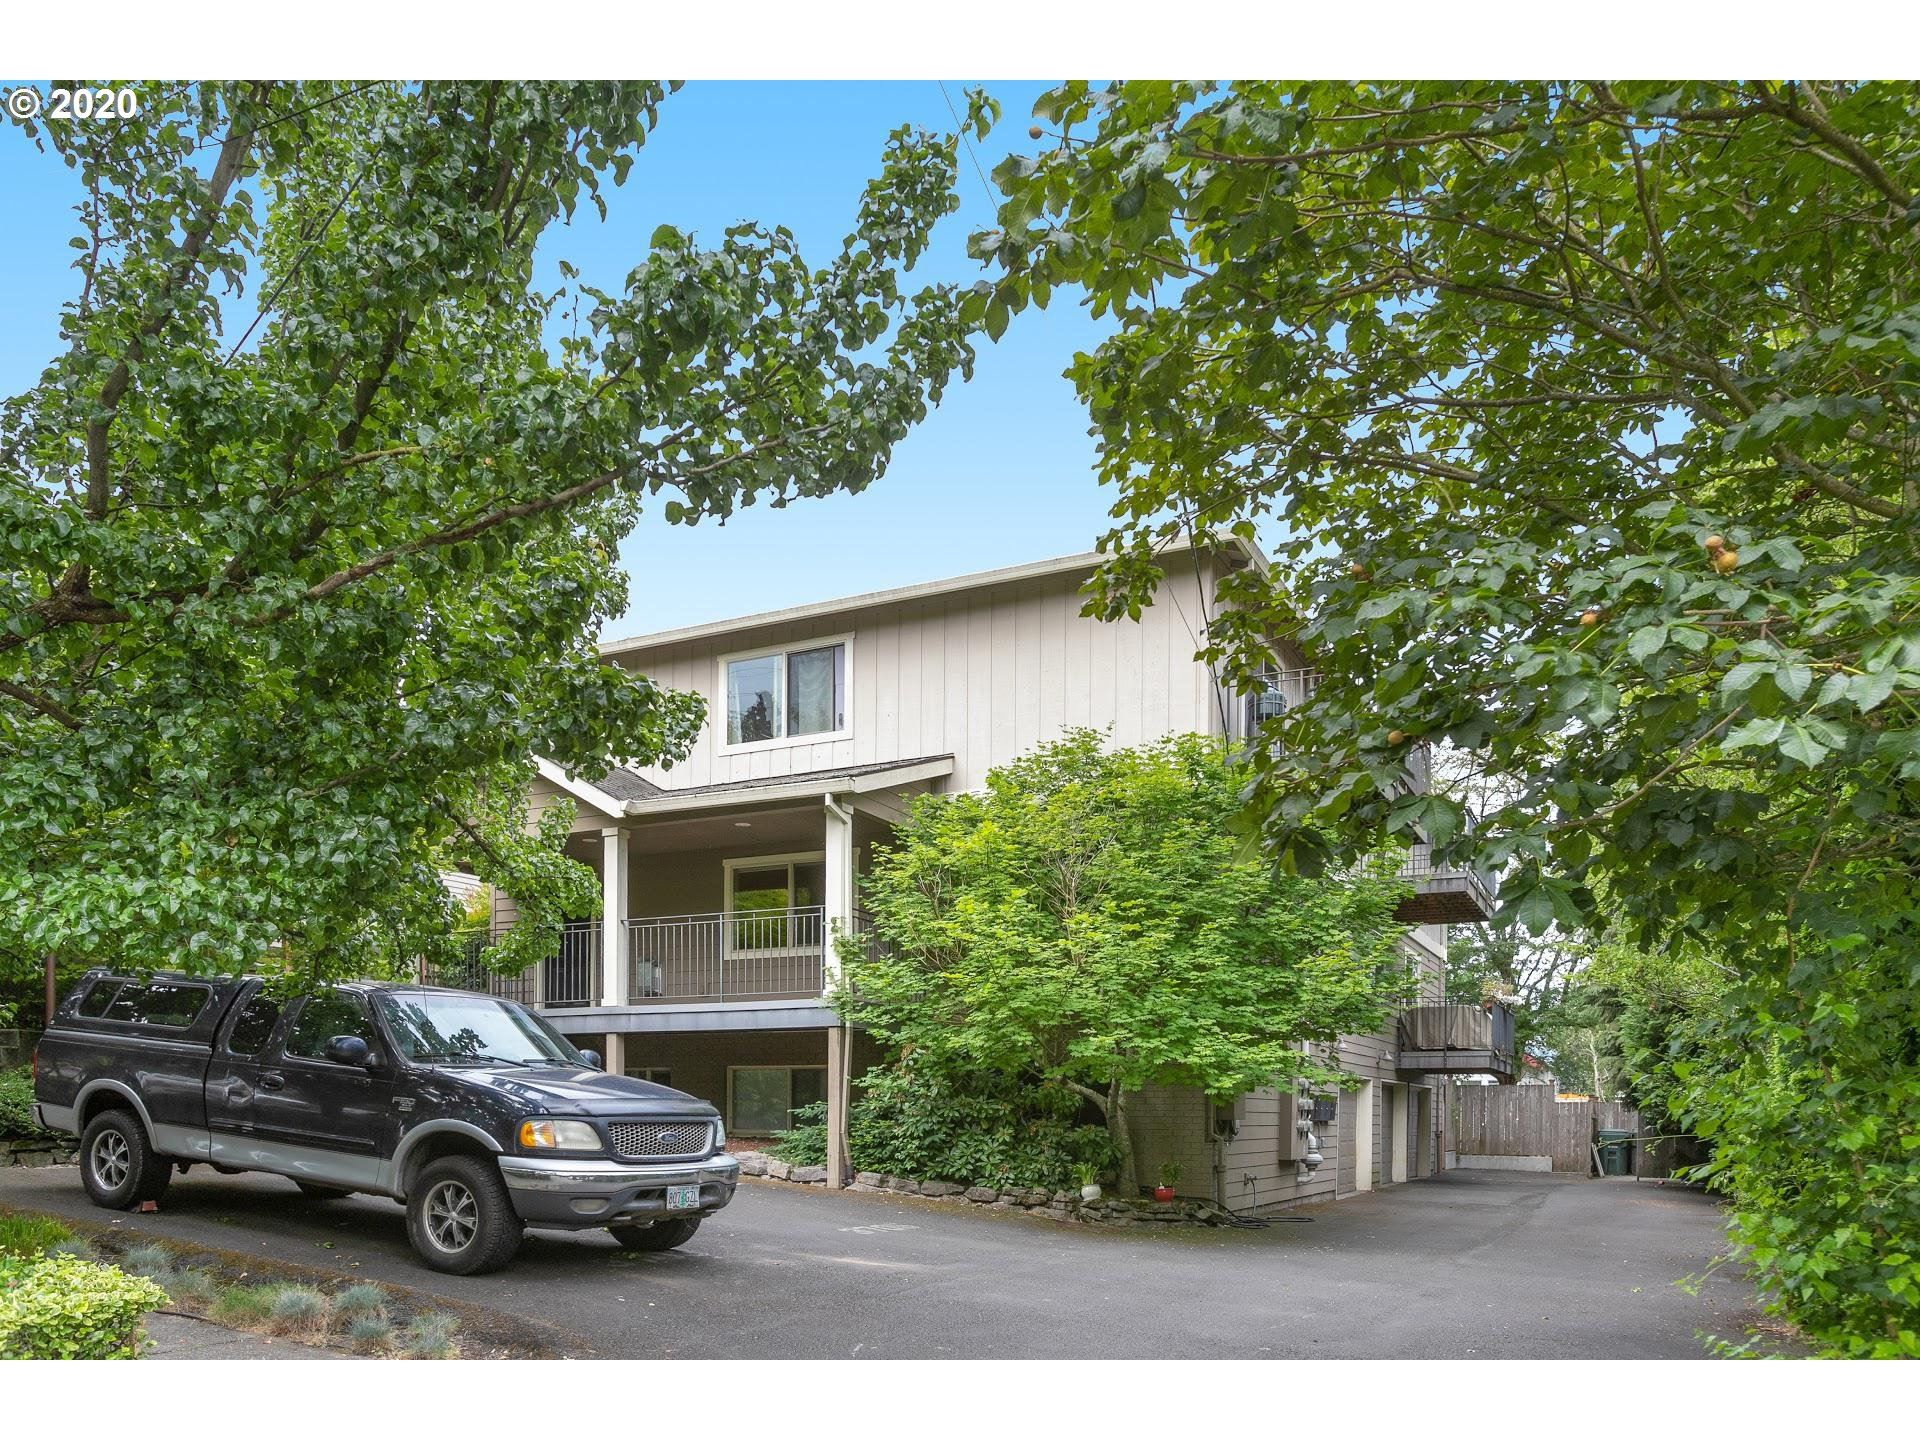 3705 SE 33RD AVE, Portland, OR 97202 - MLS#: 20454570